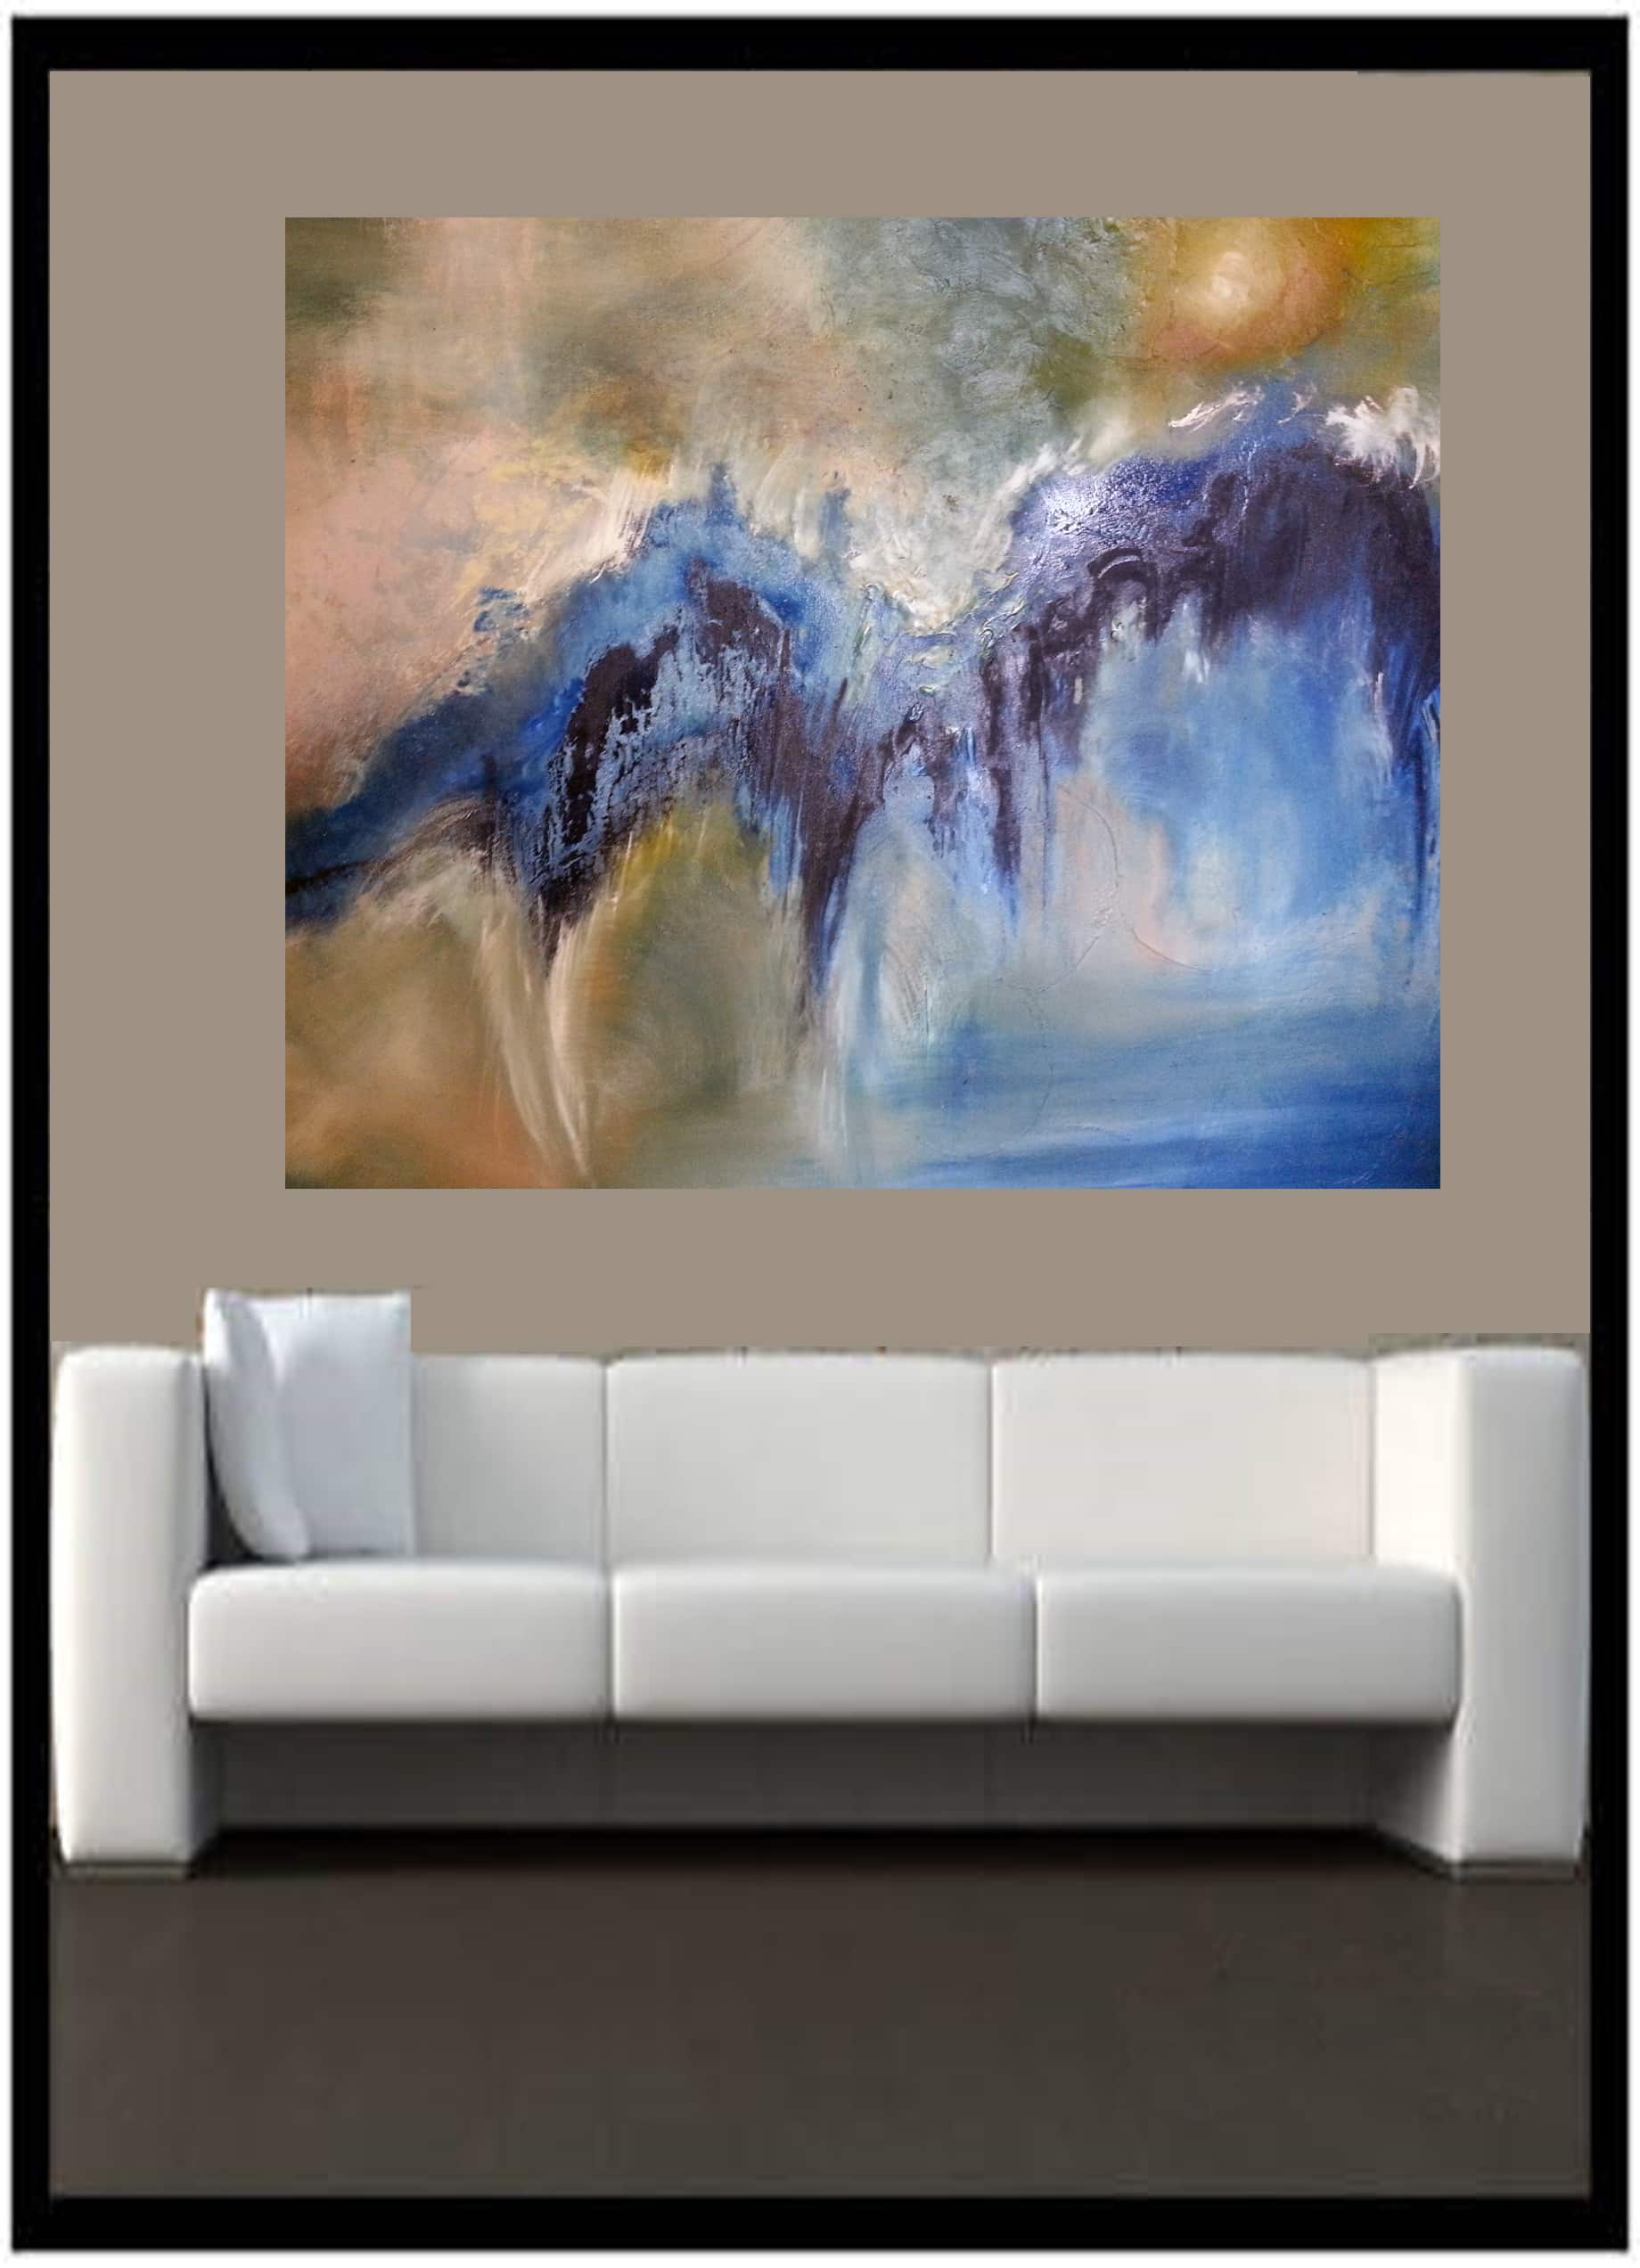 Contemporary Art Above Sofa Oil on Canvas by Artist Todd Krasovetz